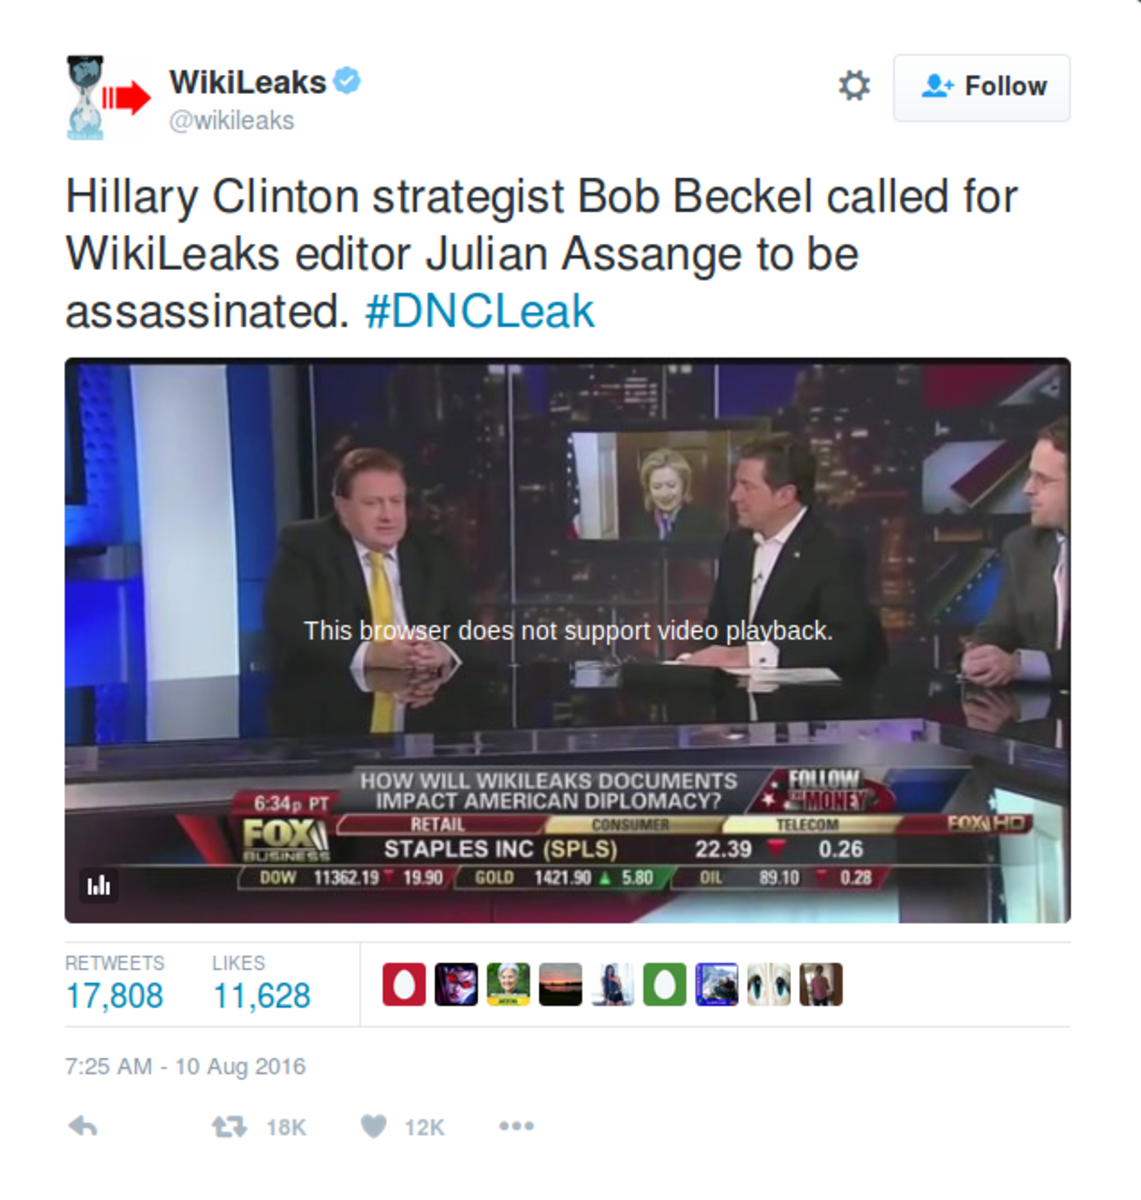 August 10, 2016 tweet from Julian Assange